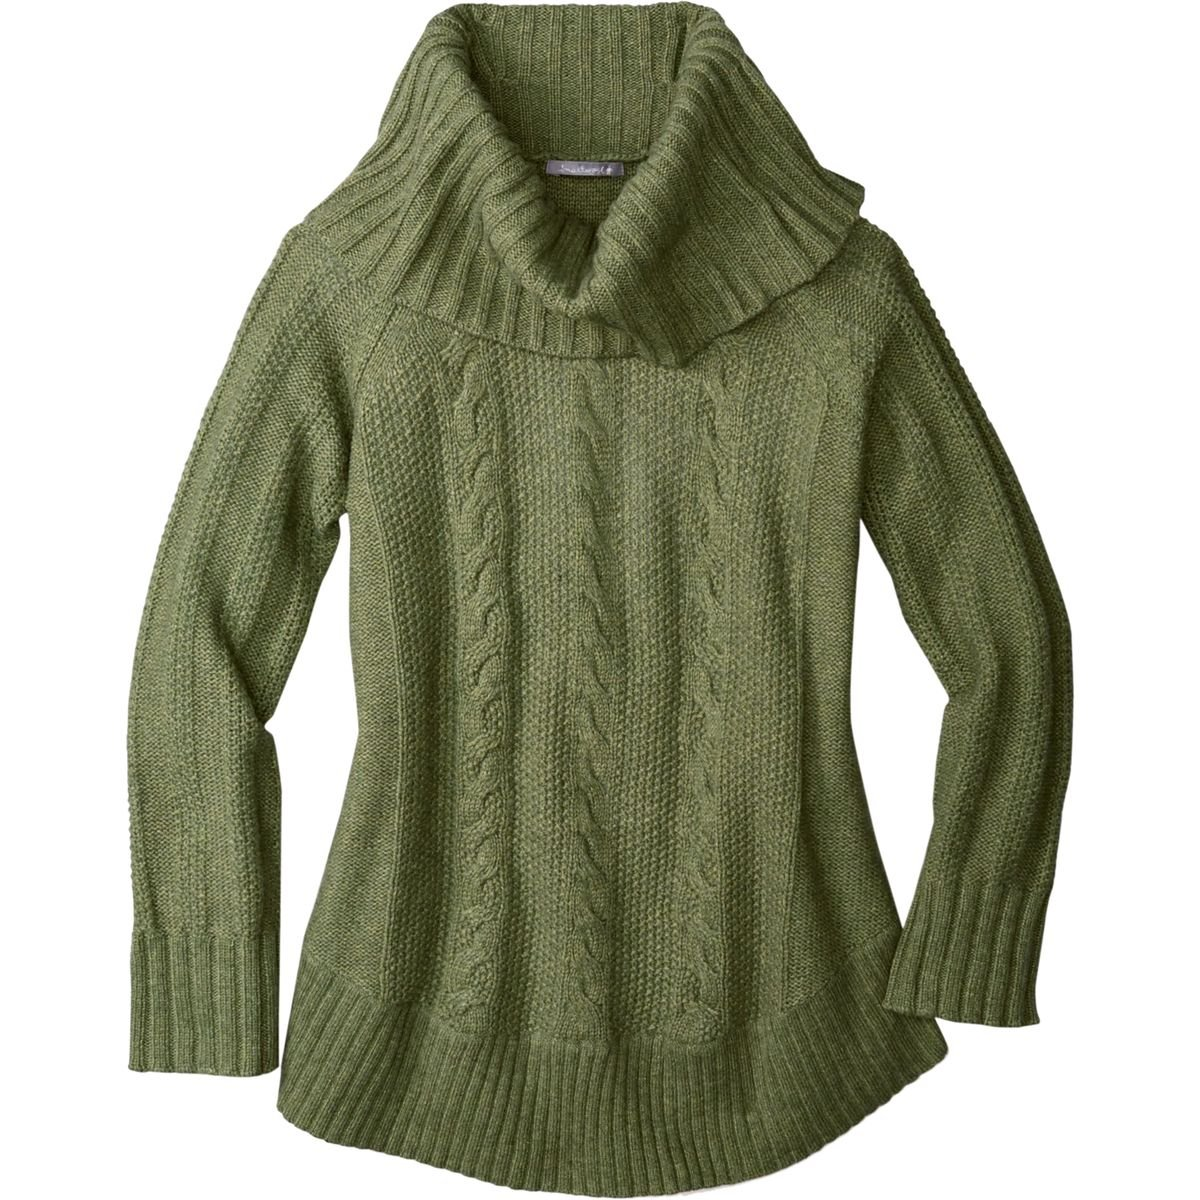 Smartwool Crestone Tunic - Women's at Amazon Women's Clothing store: